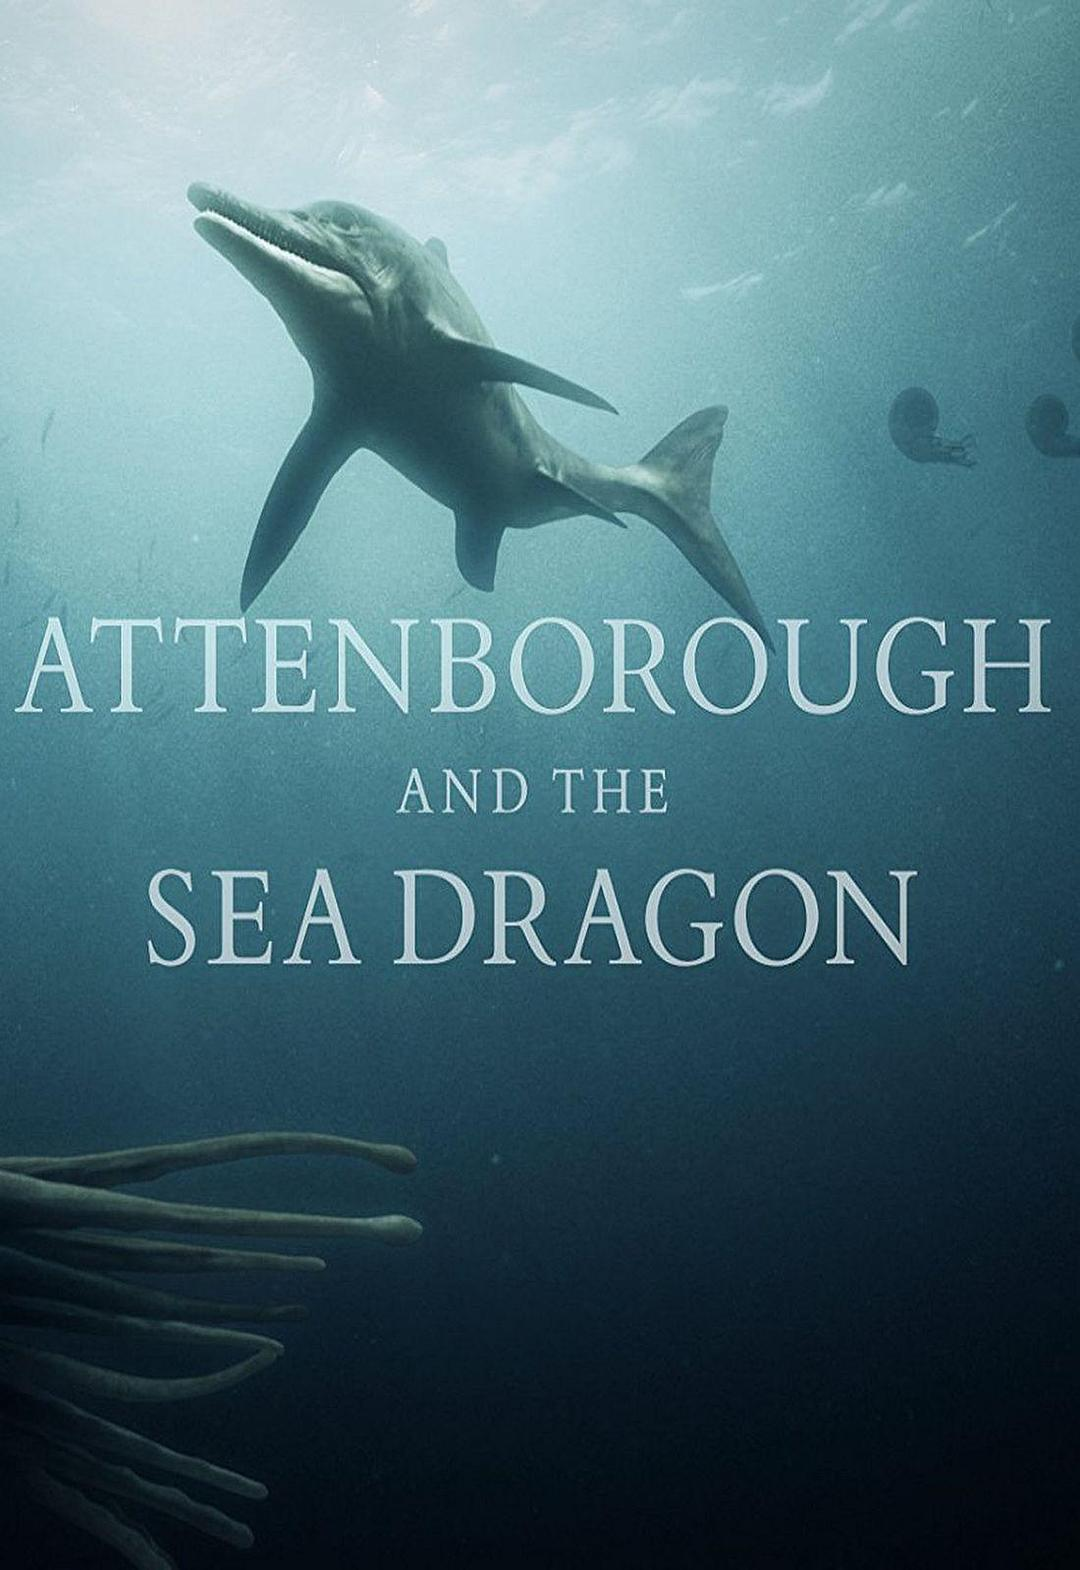 悠悠MP4_MP4电影下载_爱登堡爵士和海龙/史前海怪 Attenborough.And.The.Sea.Dragon.2018.1080p.WEBRip.x264-RARBG 1.01G